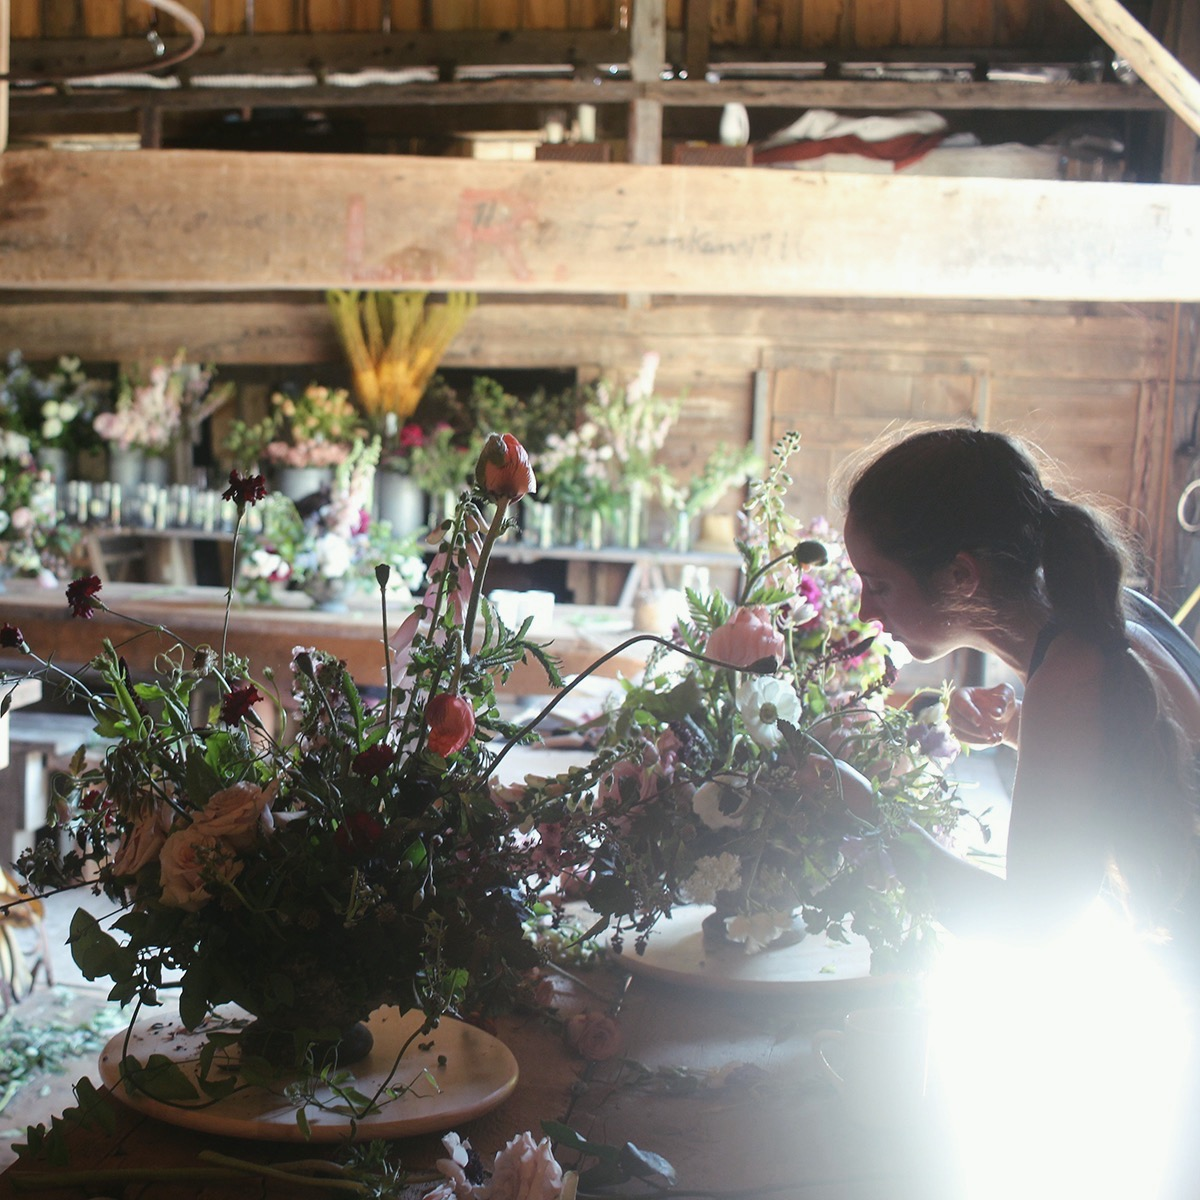 designing centerpieces in barn.jpg